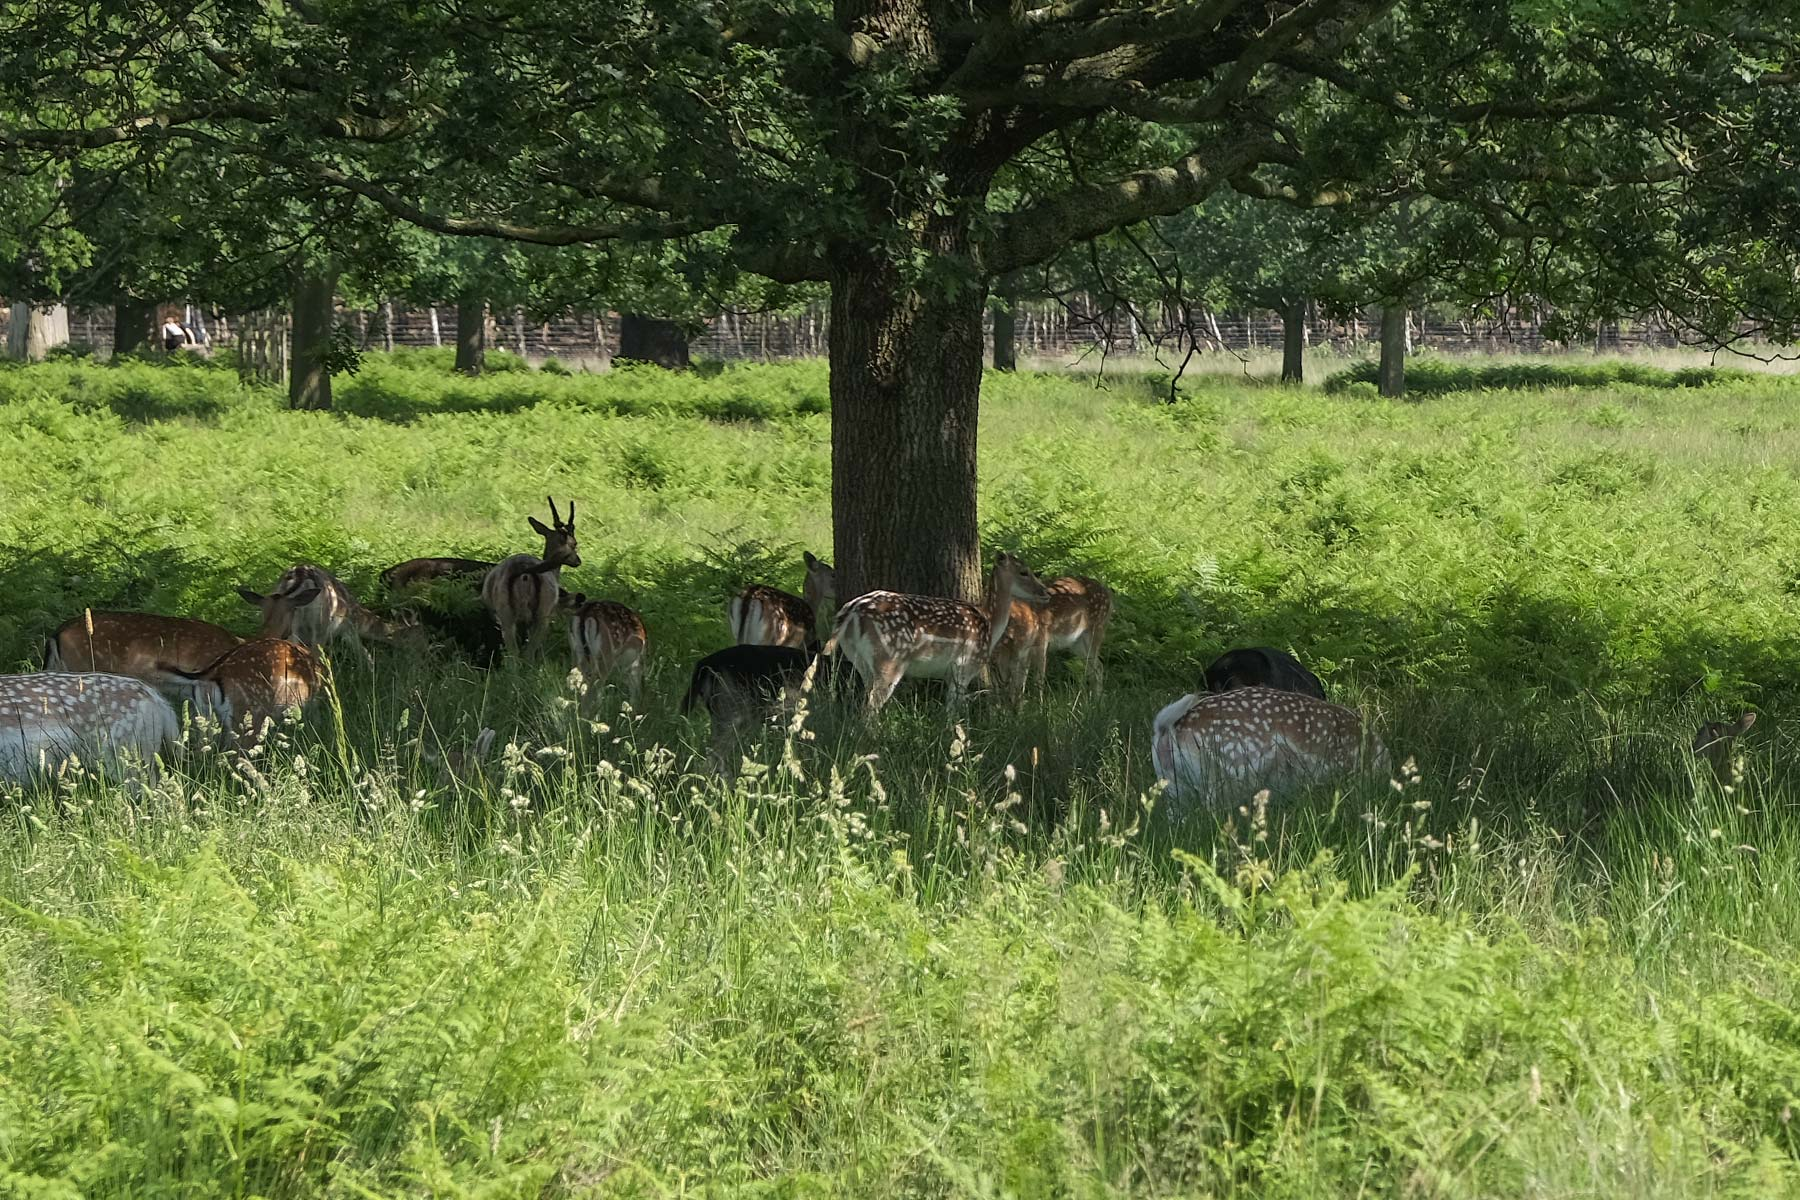 Hirsche im Richmond Park in London